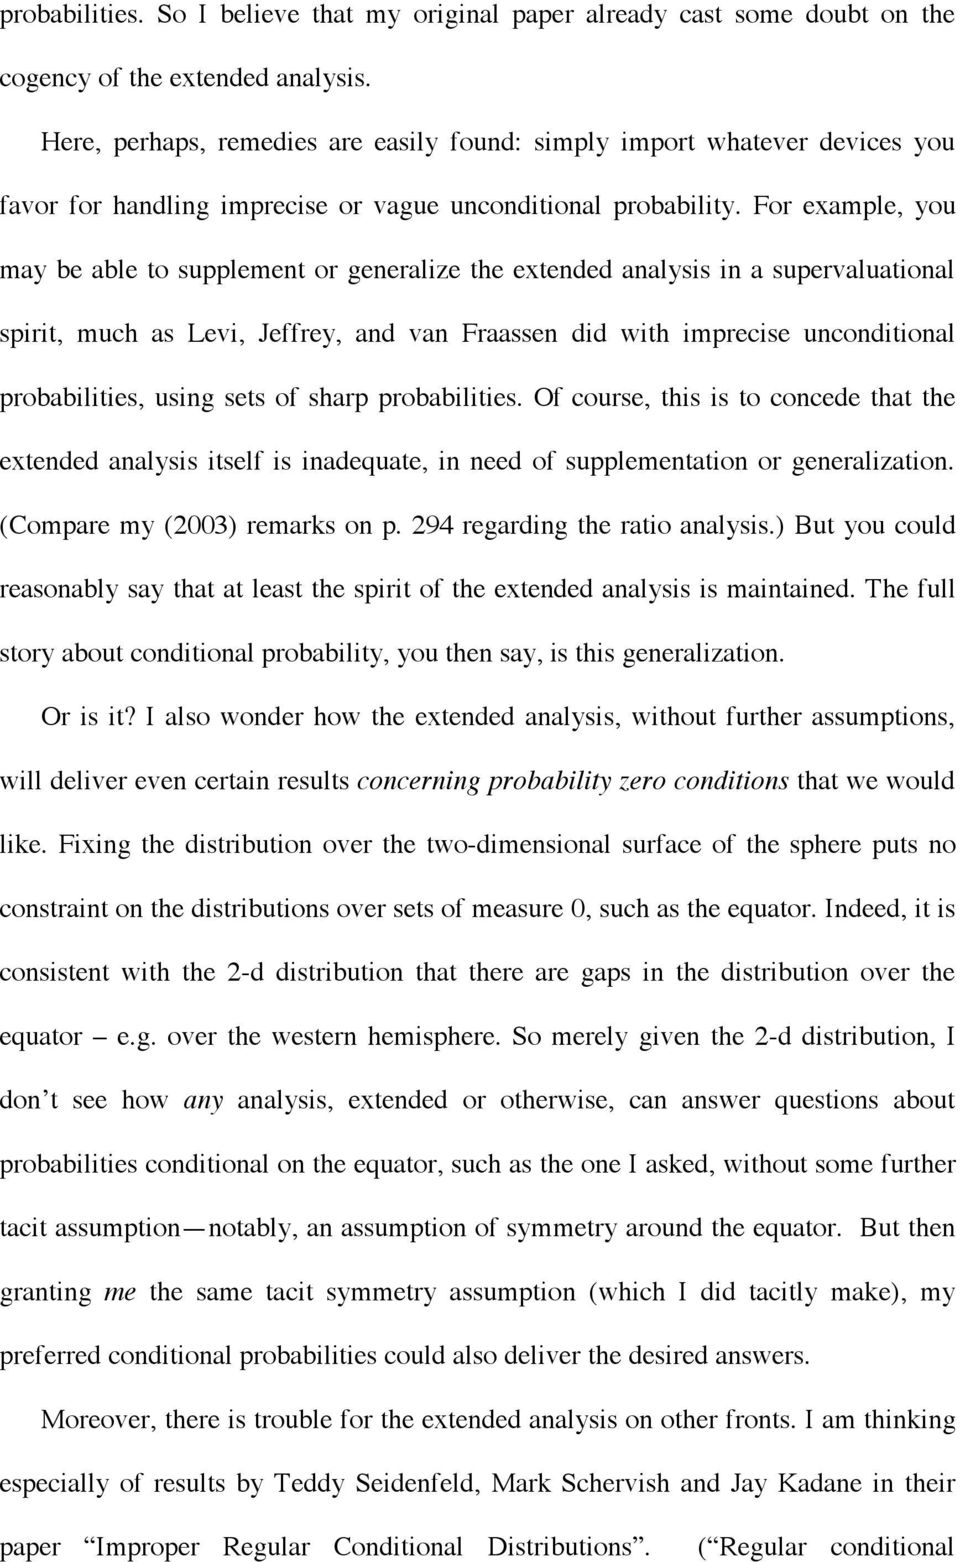 For example, you may be able to supplement or generalize the extended analysis in a supervaluational spirit, much as Levi, Jeffrey, and van Fraassen did with imprecise unconditional probabilities,